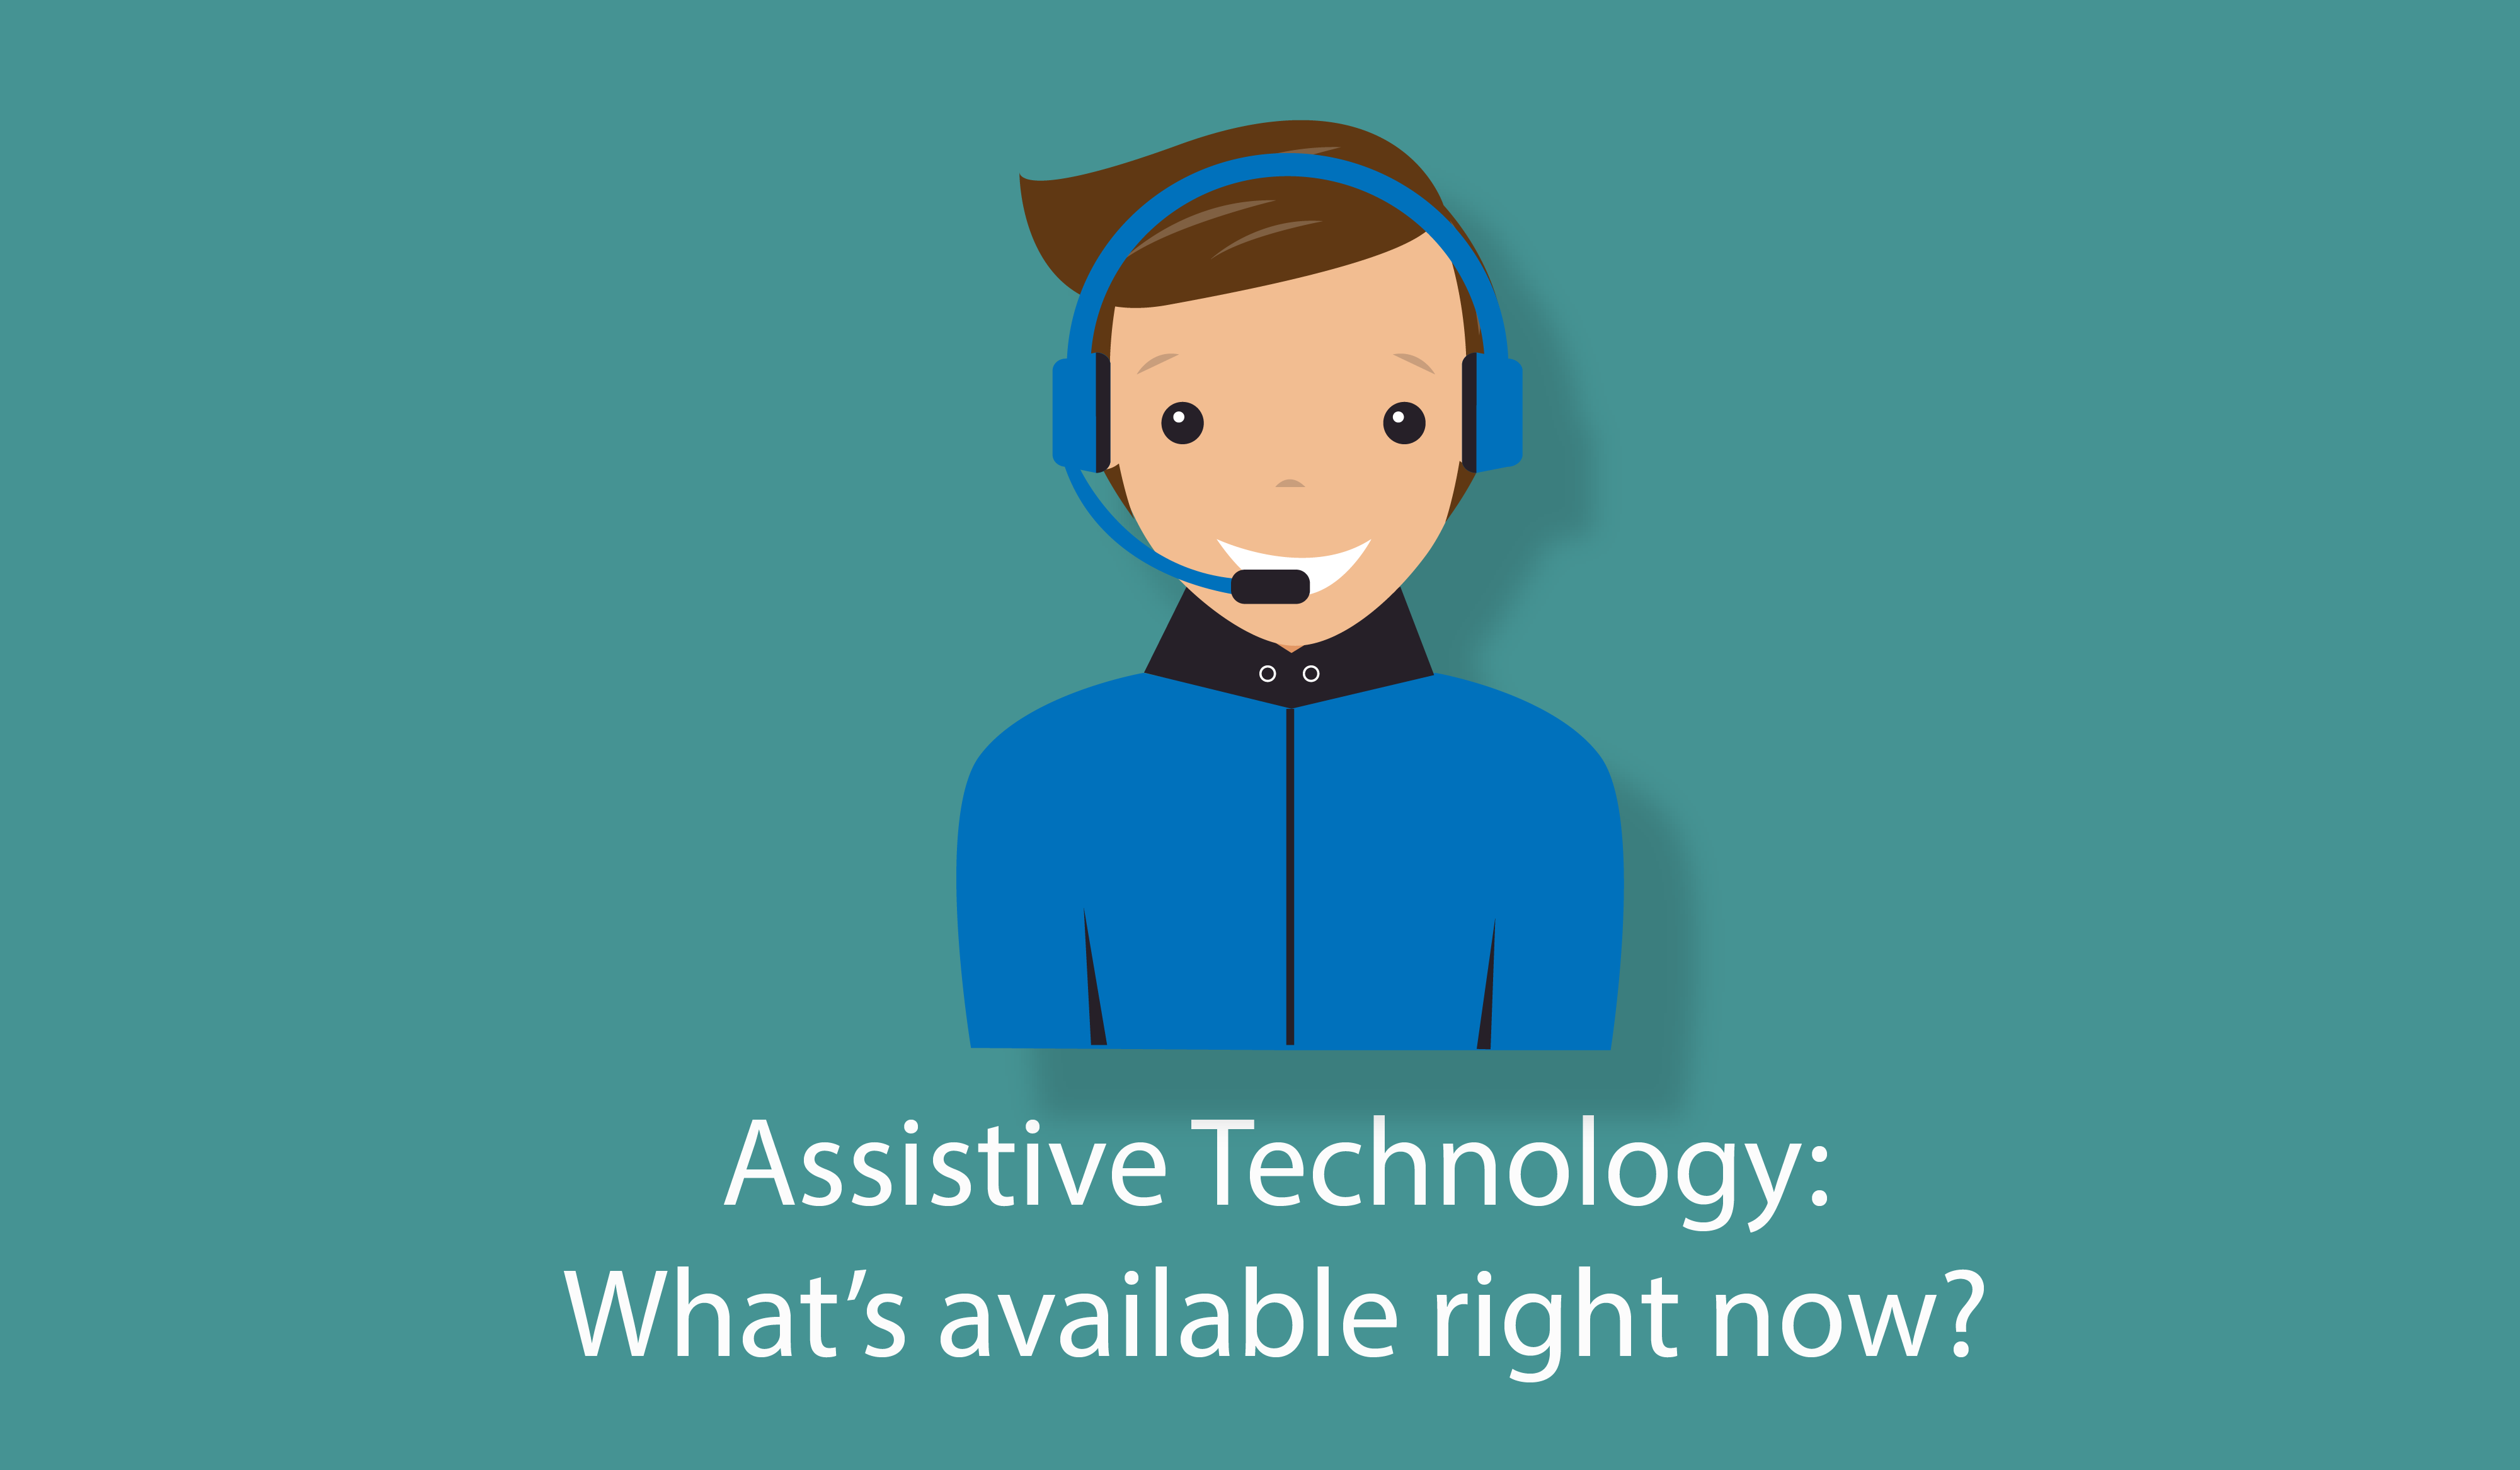 Assistive Technology: What's available right now?